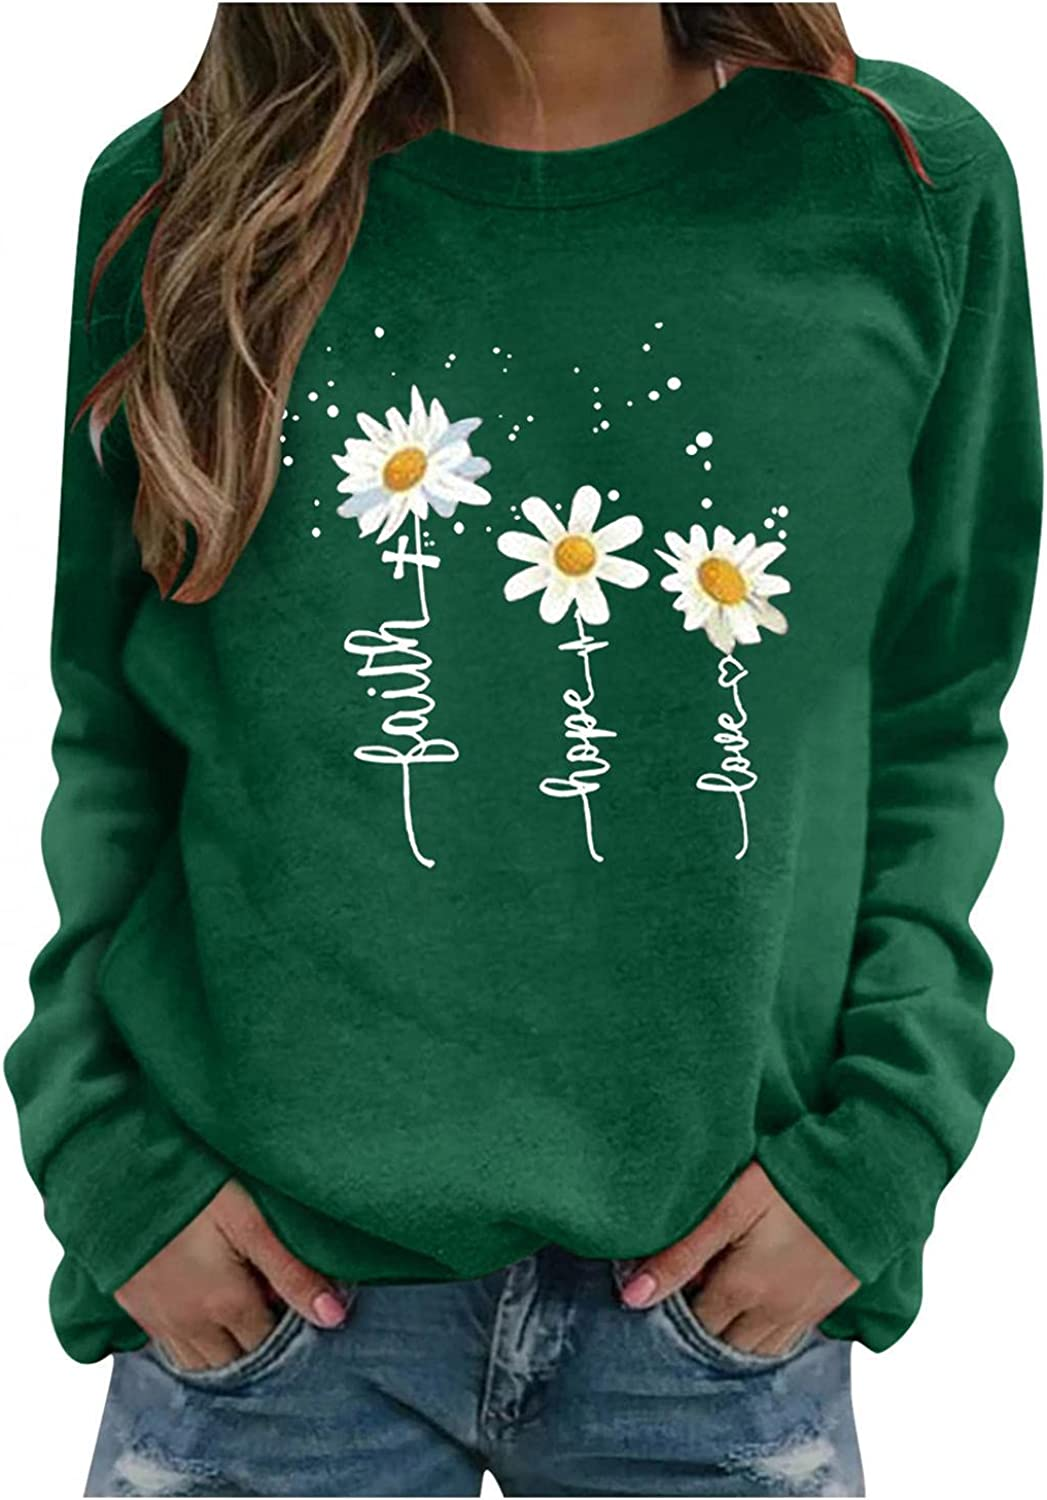 Aniwood Crewneck Sweatshirts for Women Pullover, Women's Casual Long Sleeve Floral Print Tops Shirts Blouse for Teen Girls